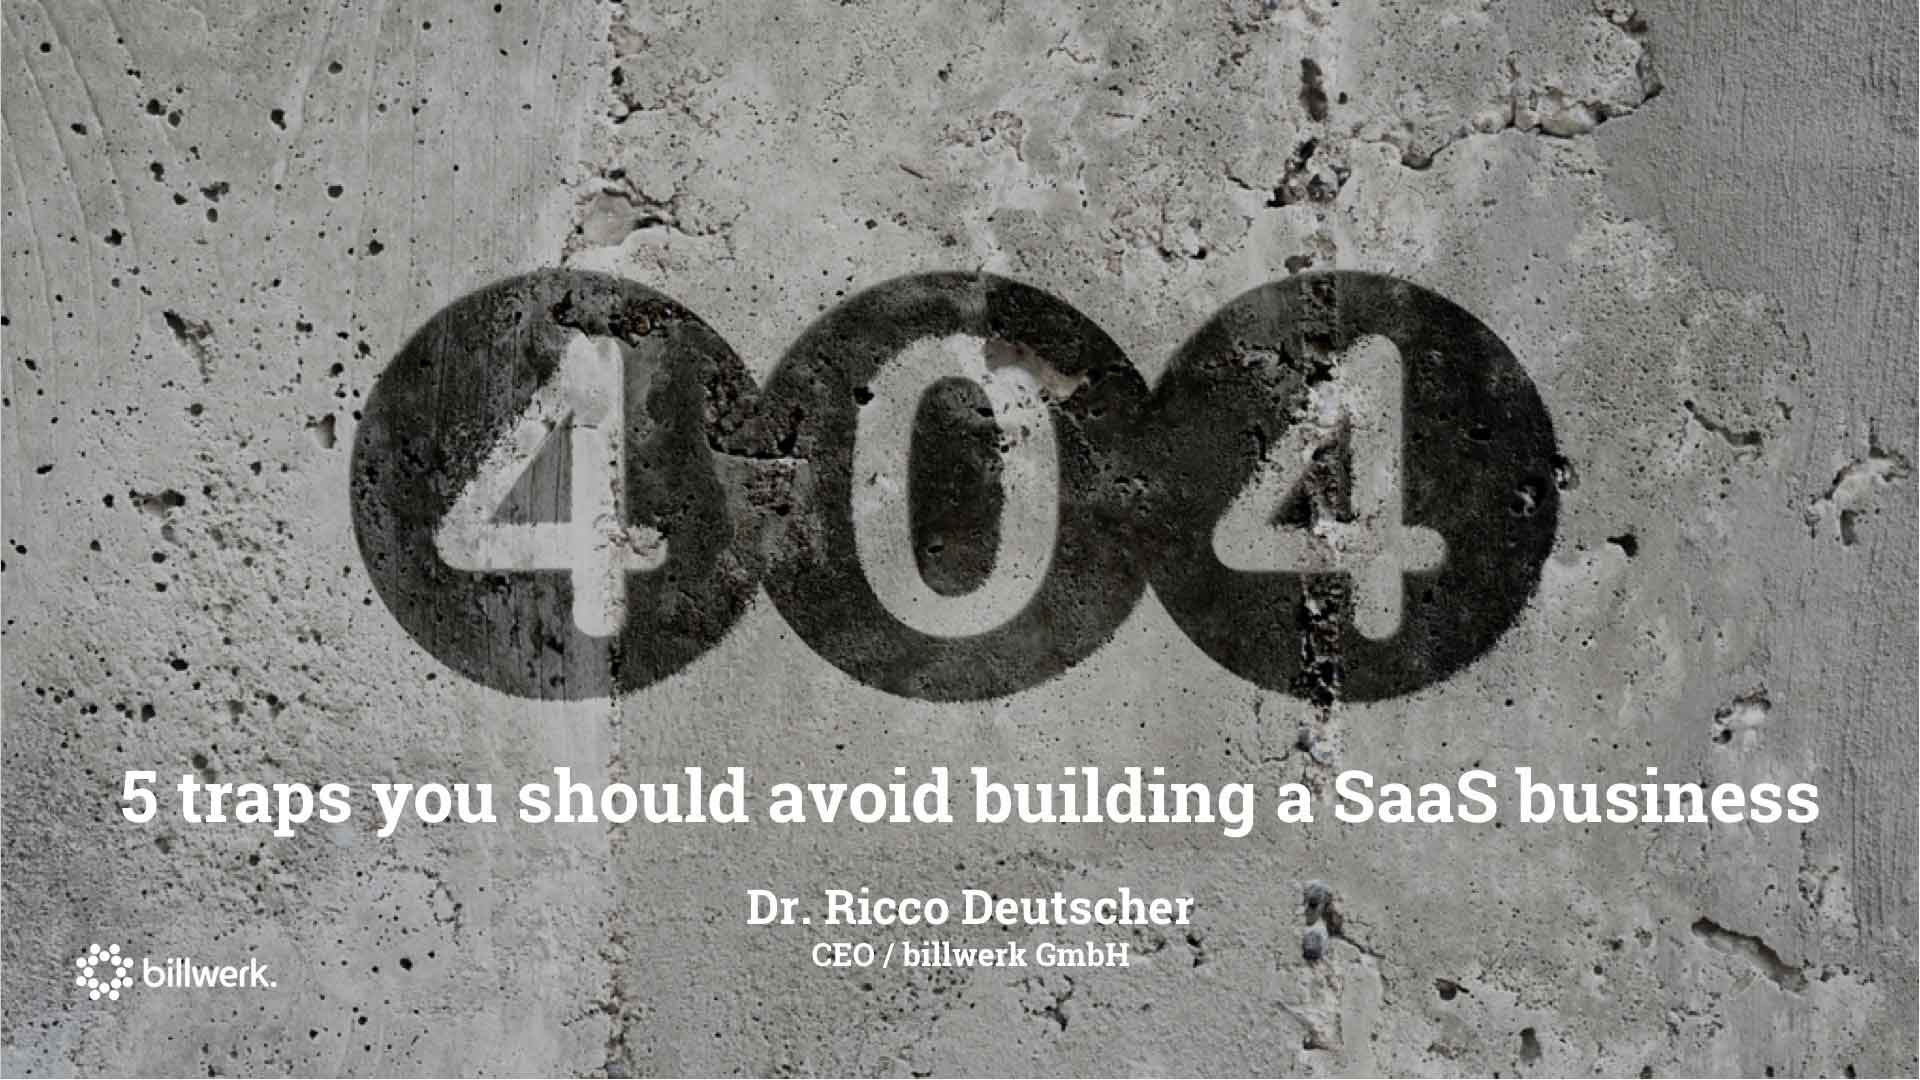 5 traps you should avoid building a Saas business | CEO Dr. Ricco Deutscher | billwerk GmbH